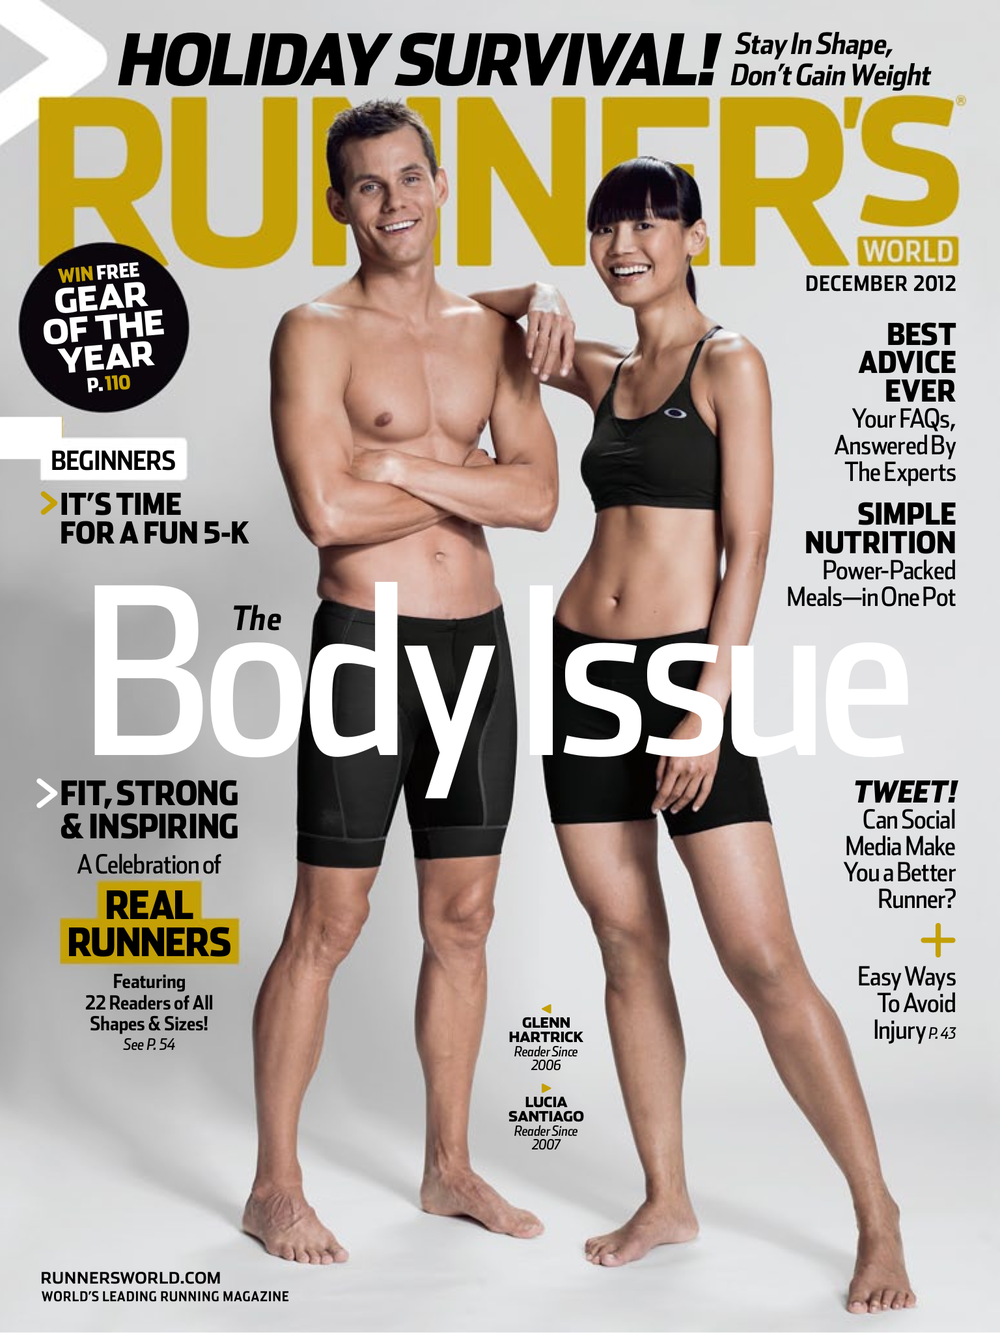 RUNNER'S WORLD | Publication